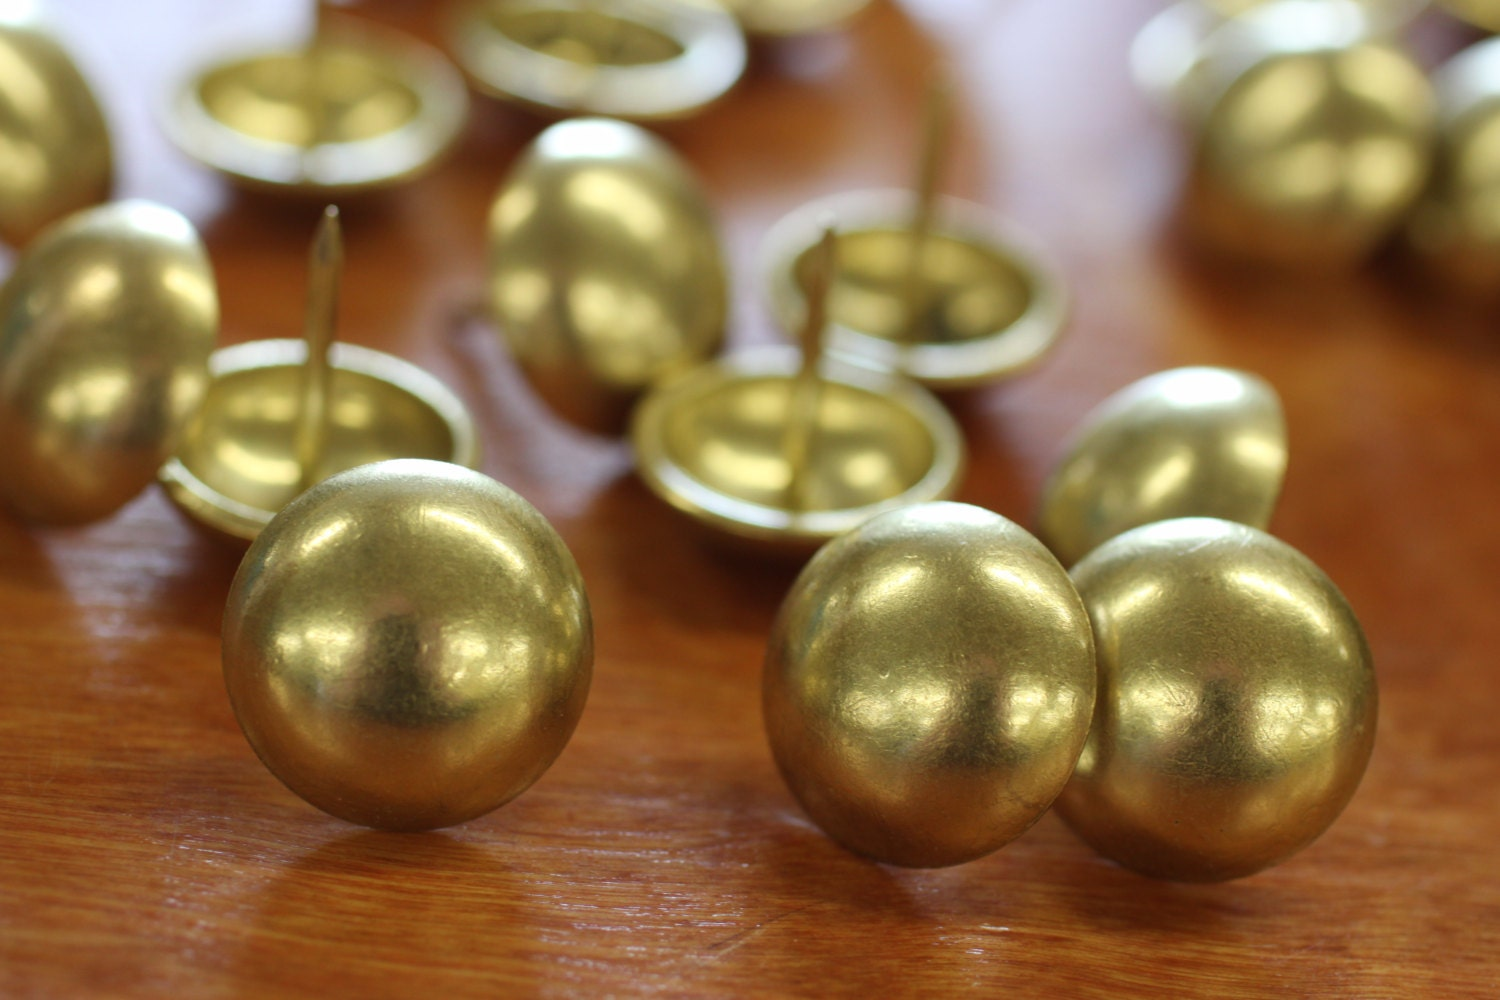 Upholstery decorative nail heads brass plated finish big for Decorative nails